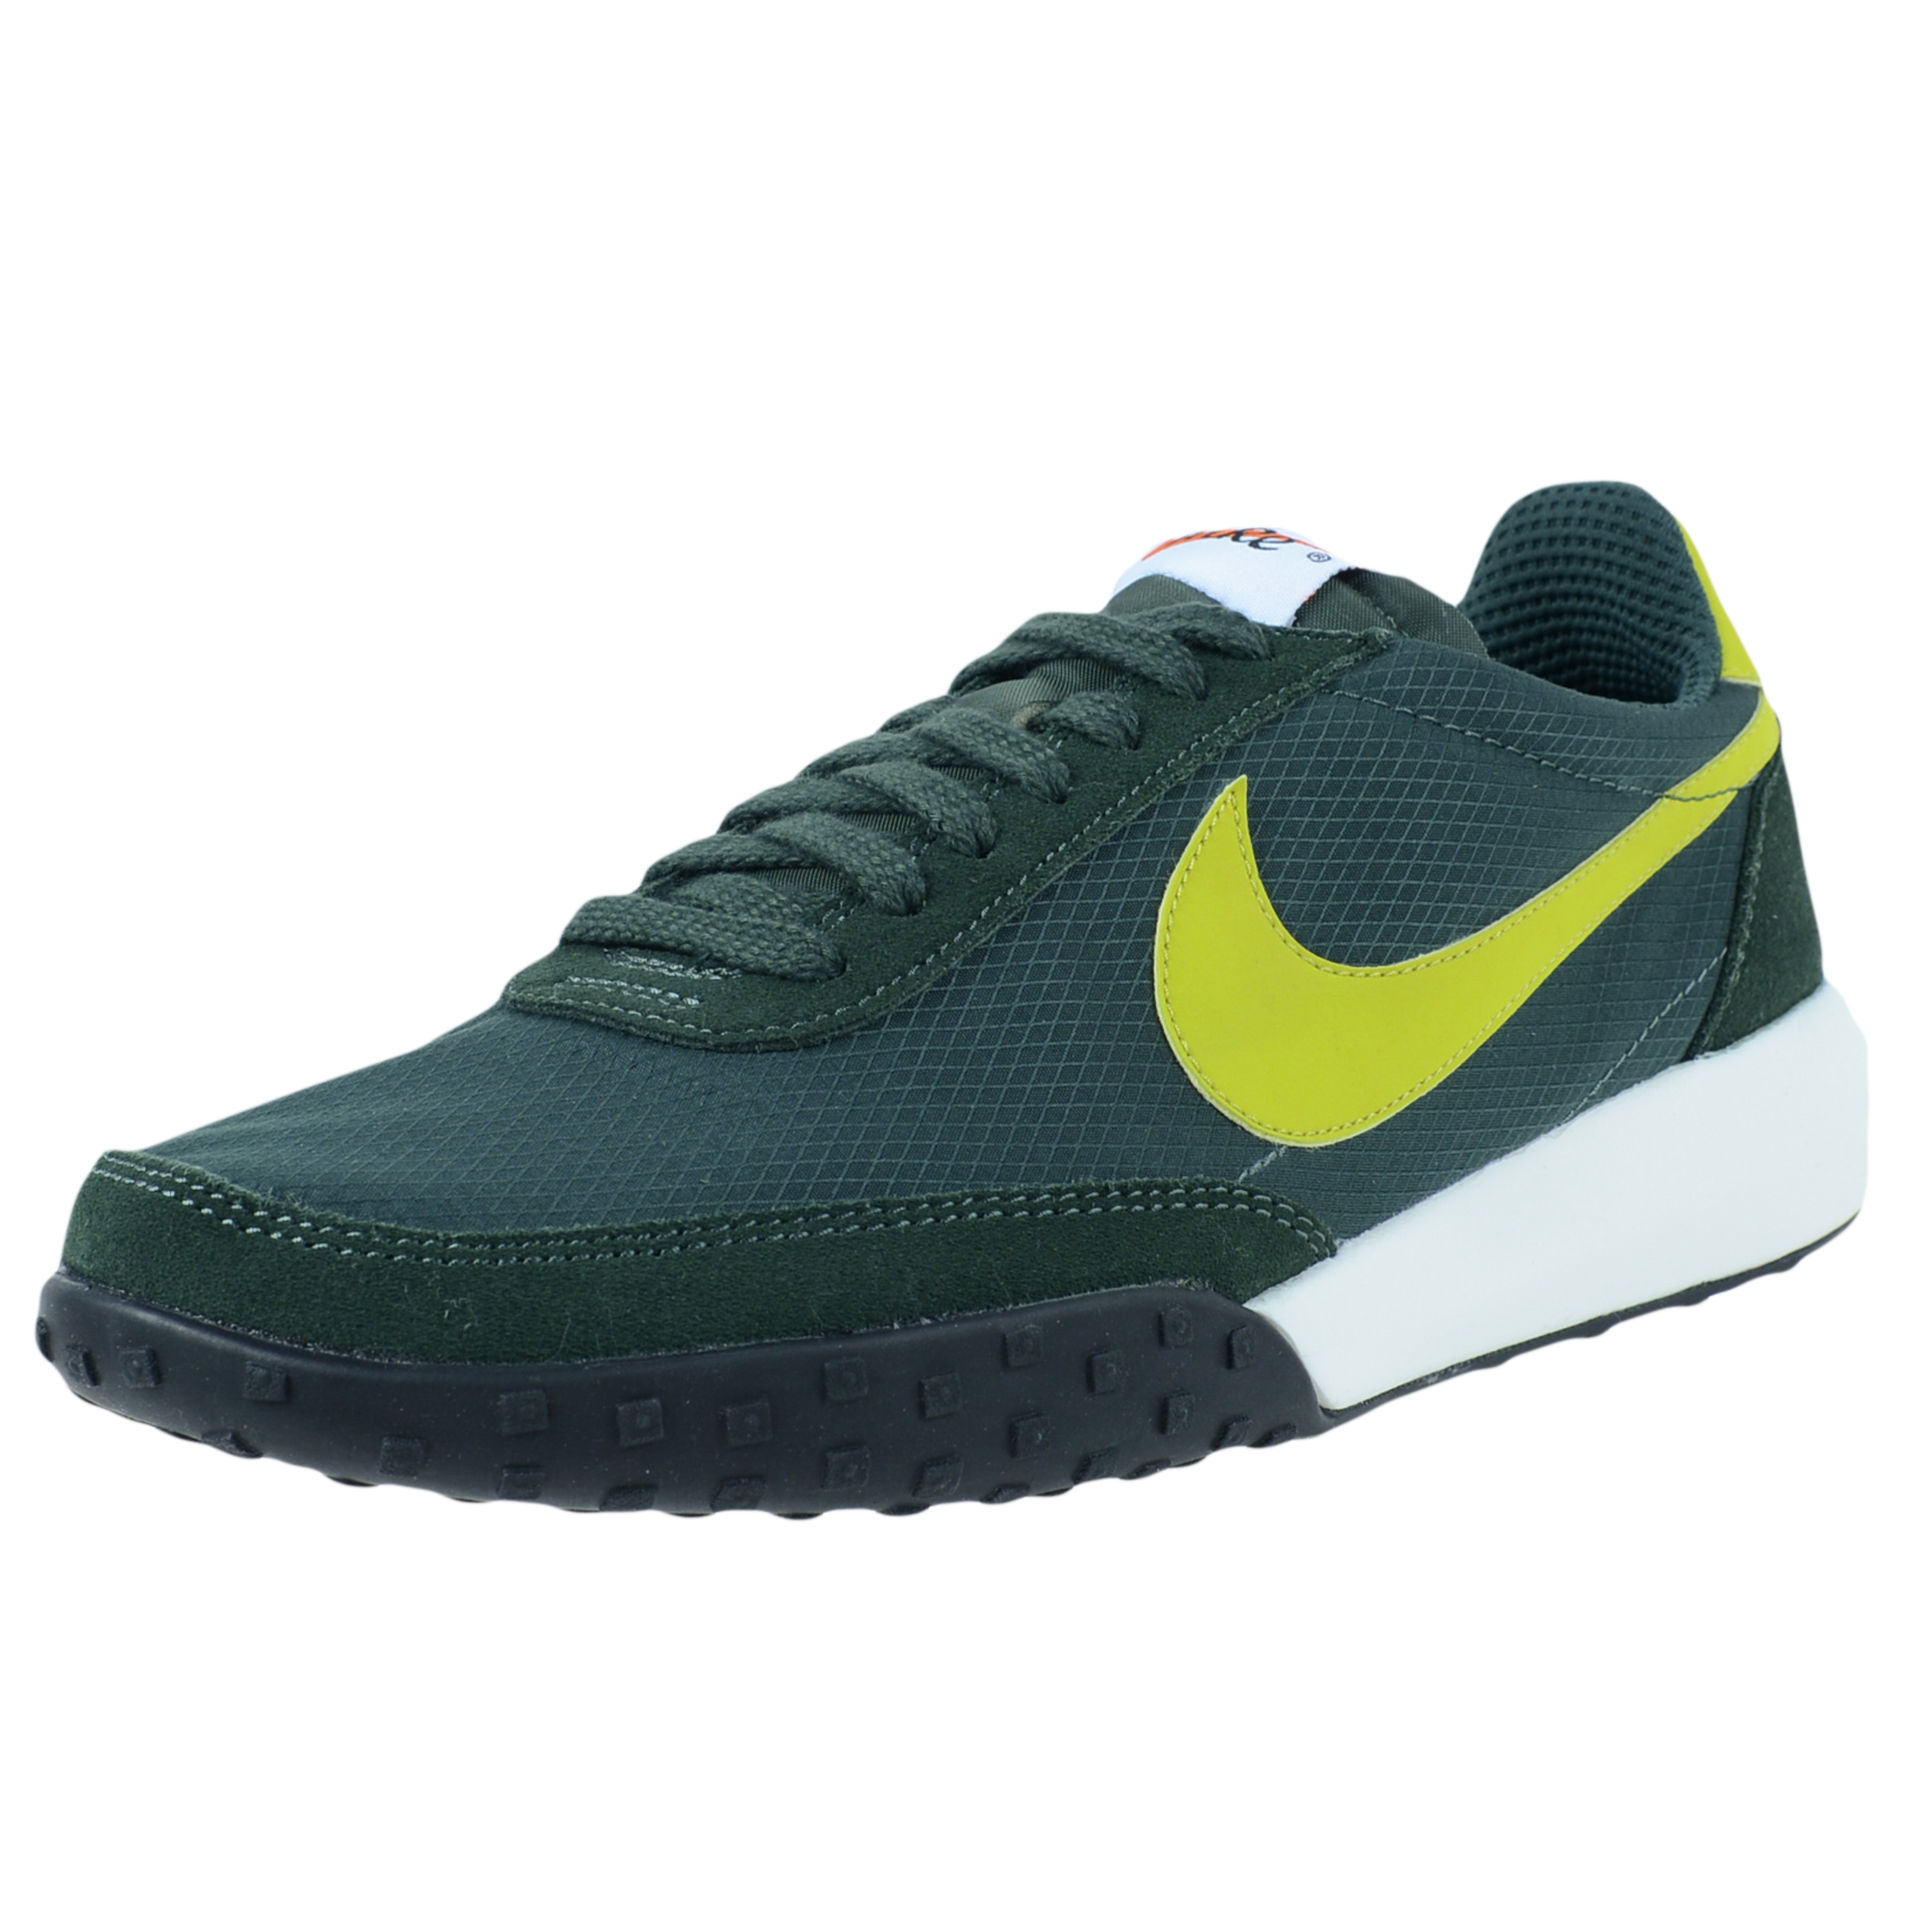 a95259d32dab ... shopping nike roshe waffle racer nm running shoes grove green bright  cactus 845089 300 walmart db396